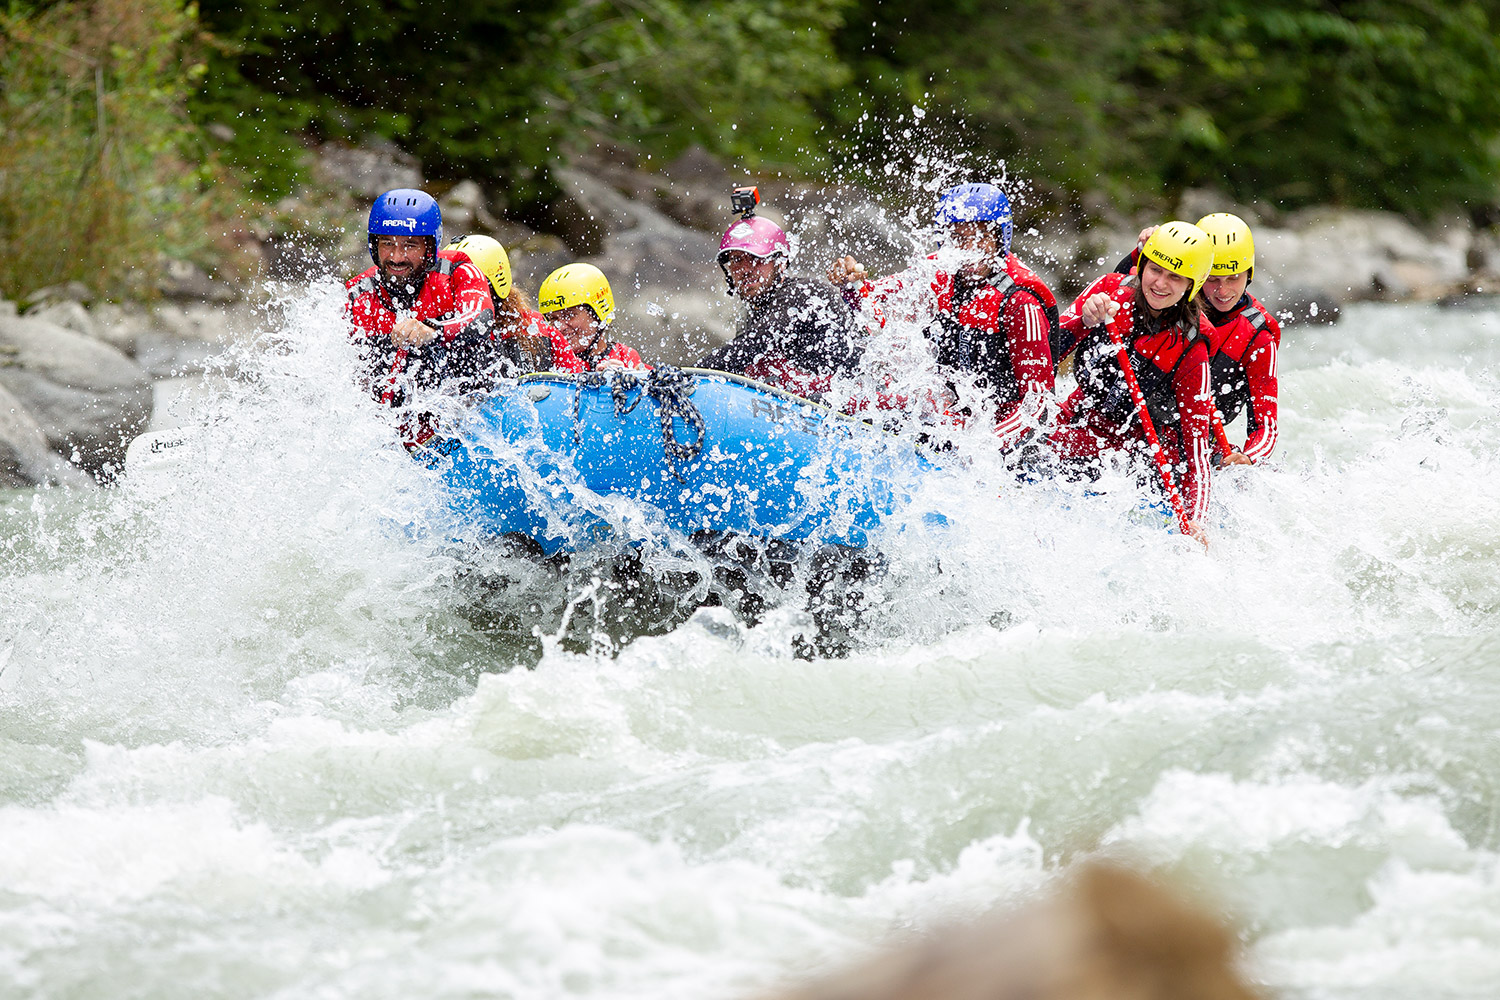 River rafting in the Ötztal in Tyrol, Austria – AREA 47